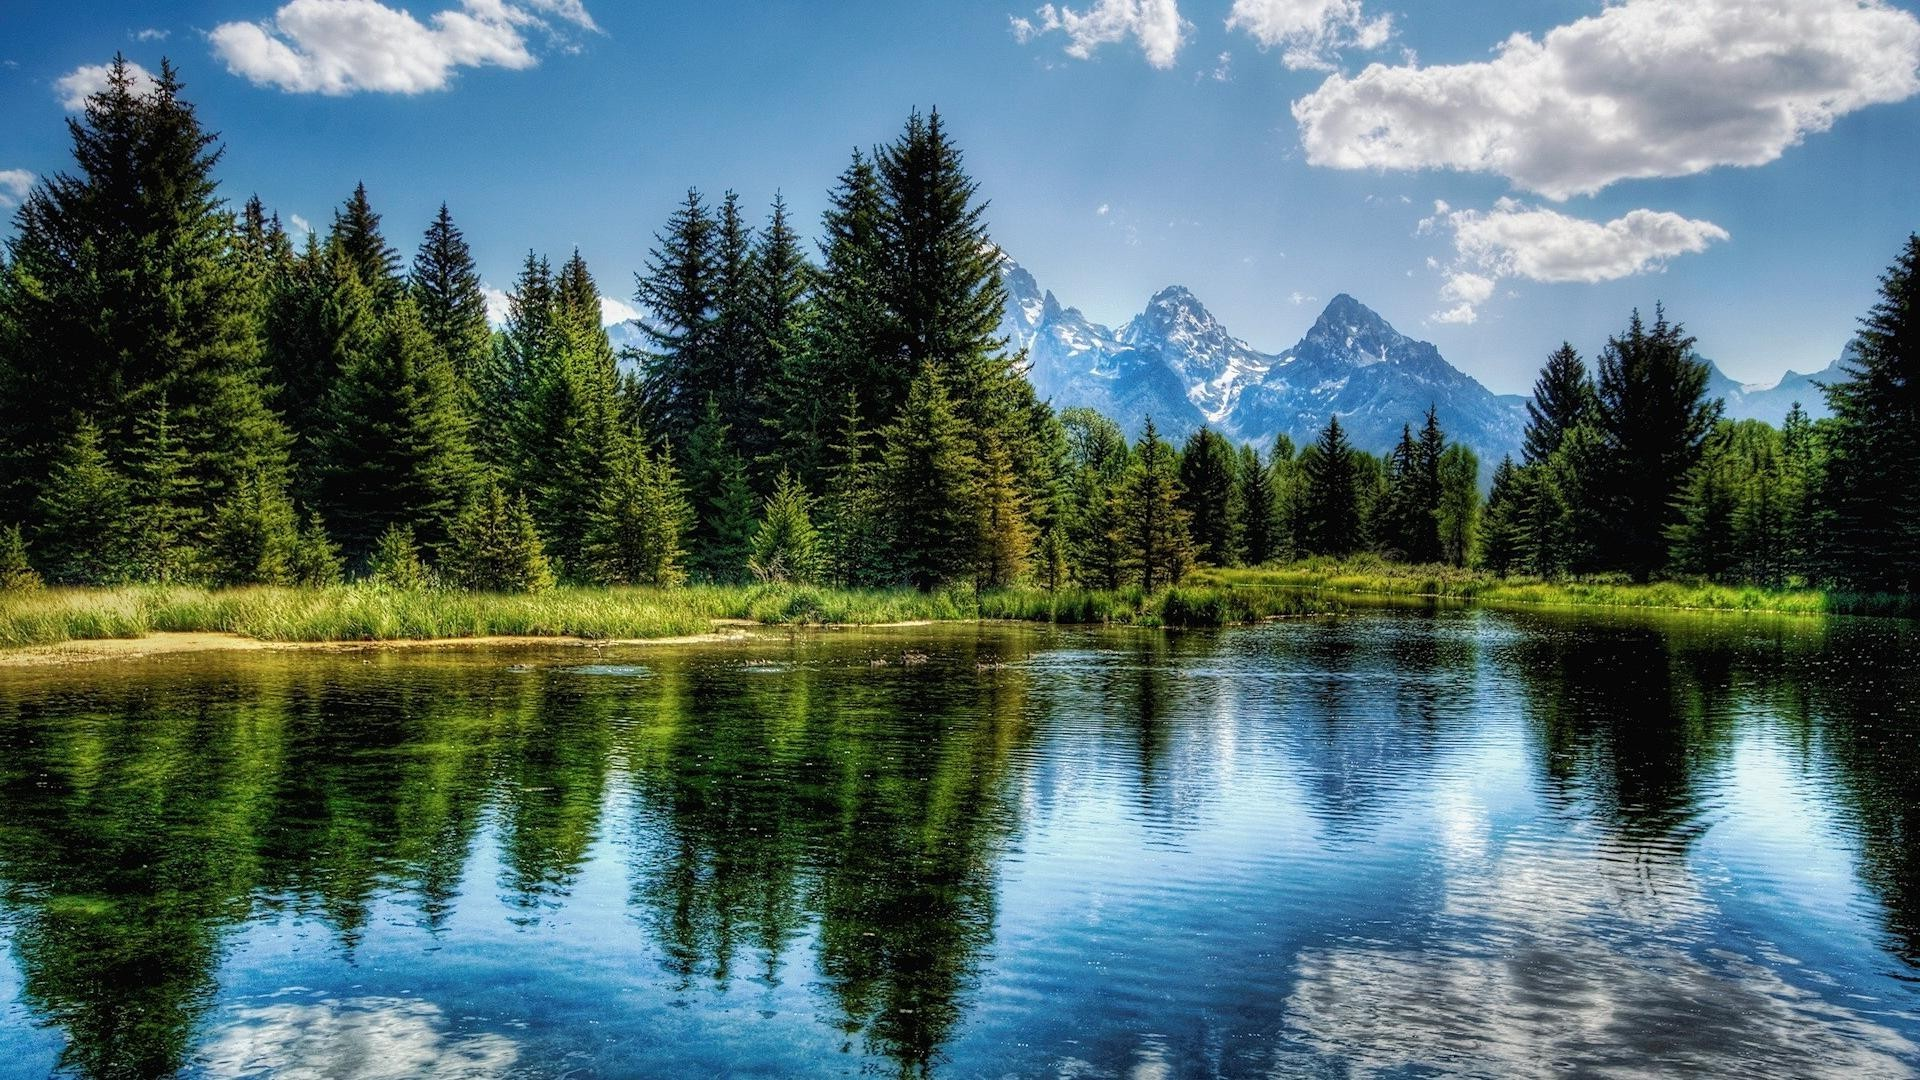 lake reflection water nature outdoors wood landscape composure tree summer sky scenic